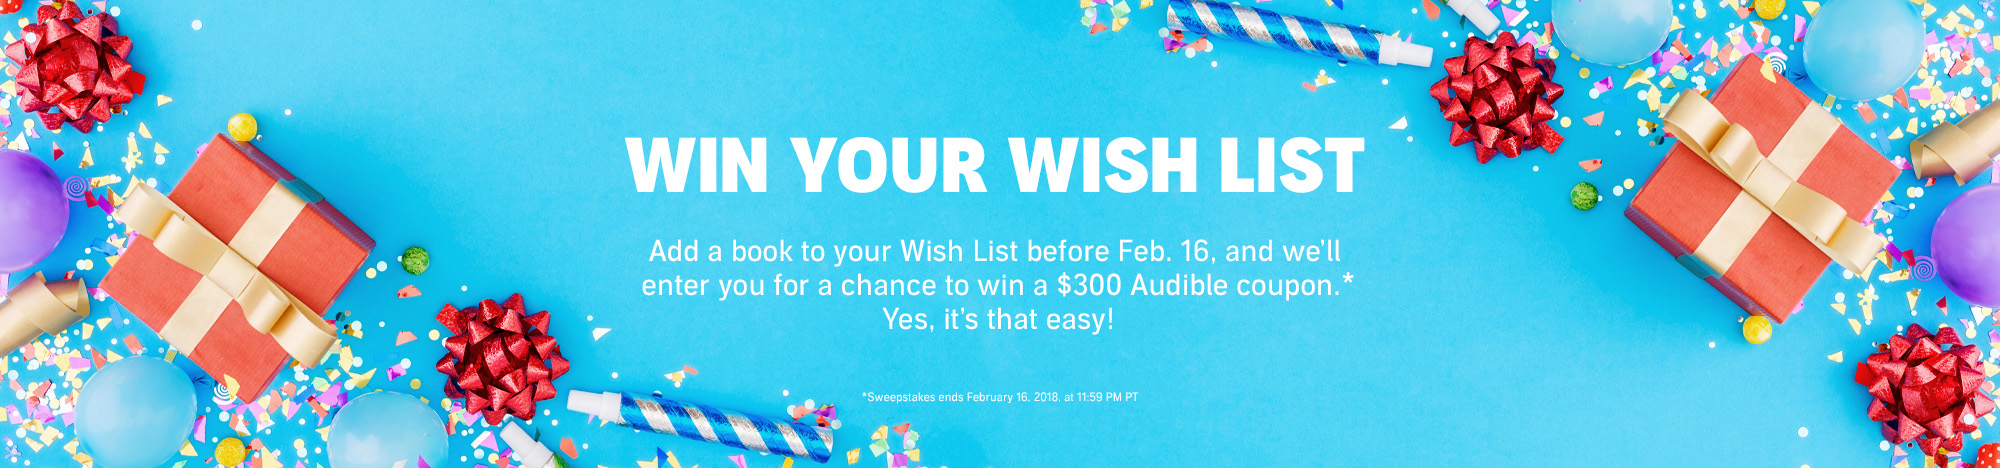 Win Your Wish List!